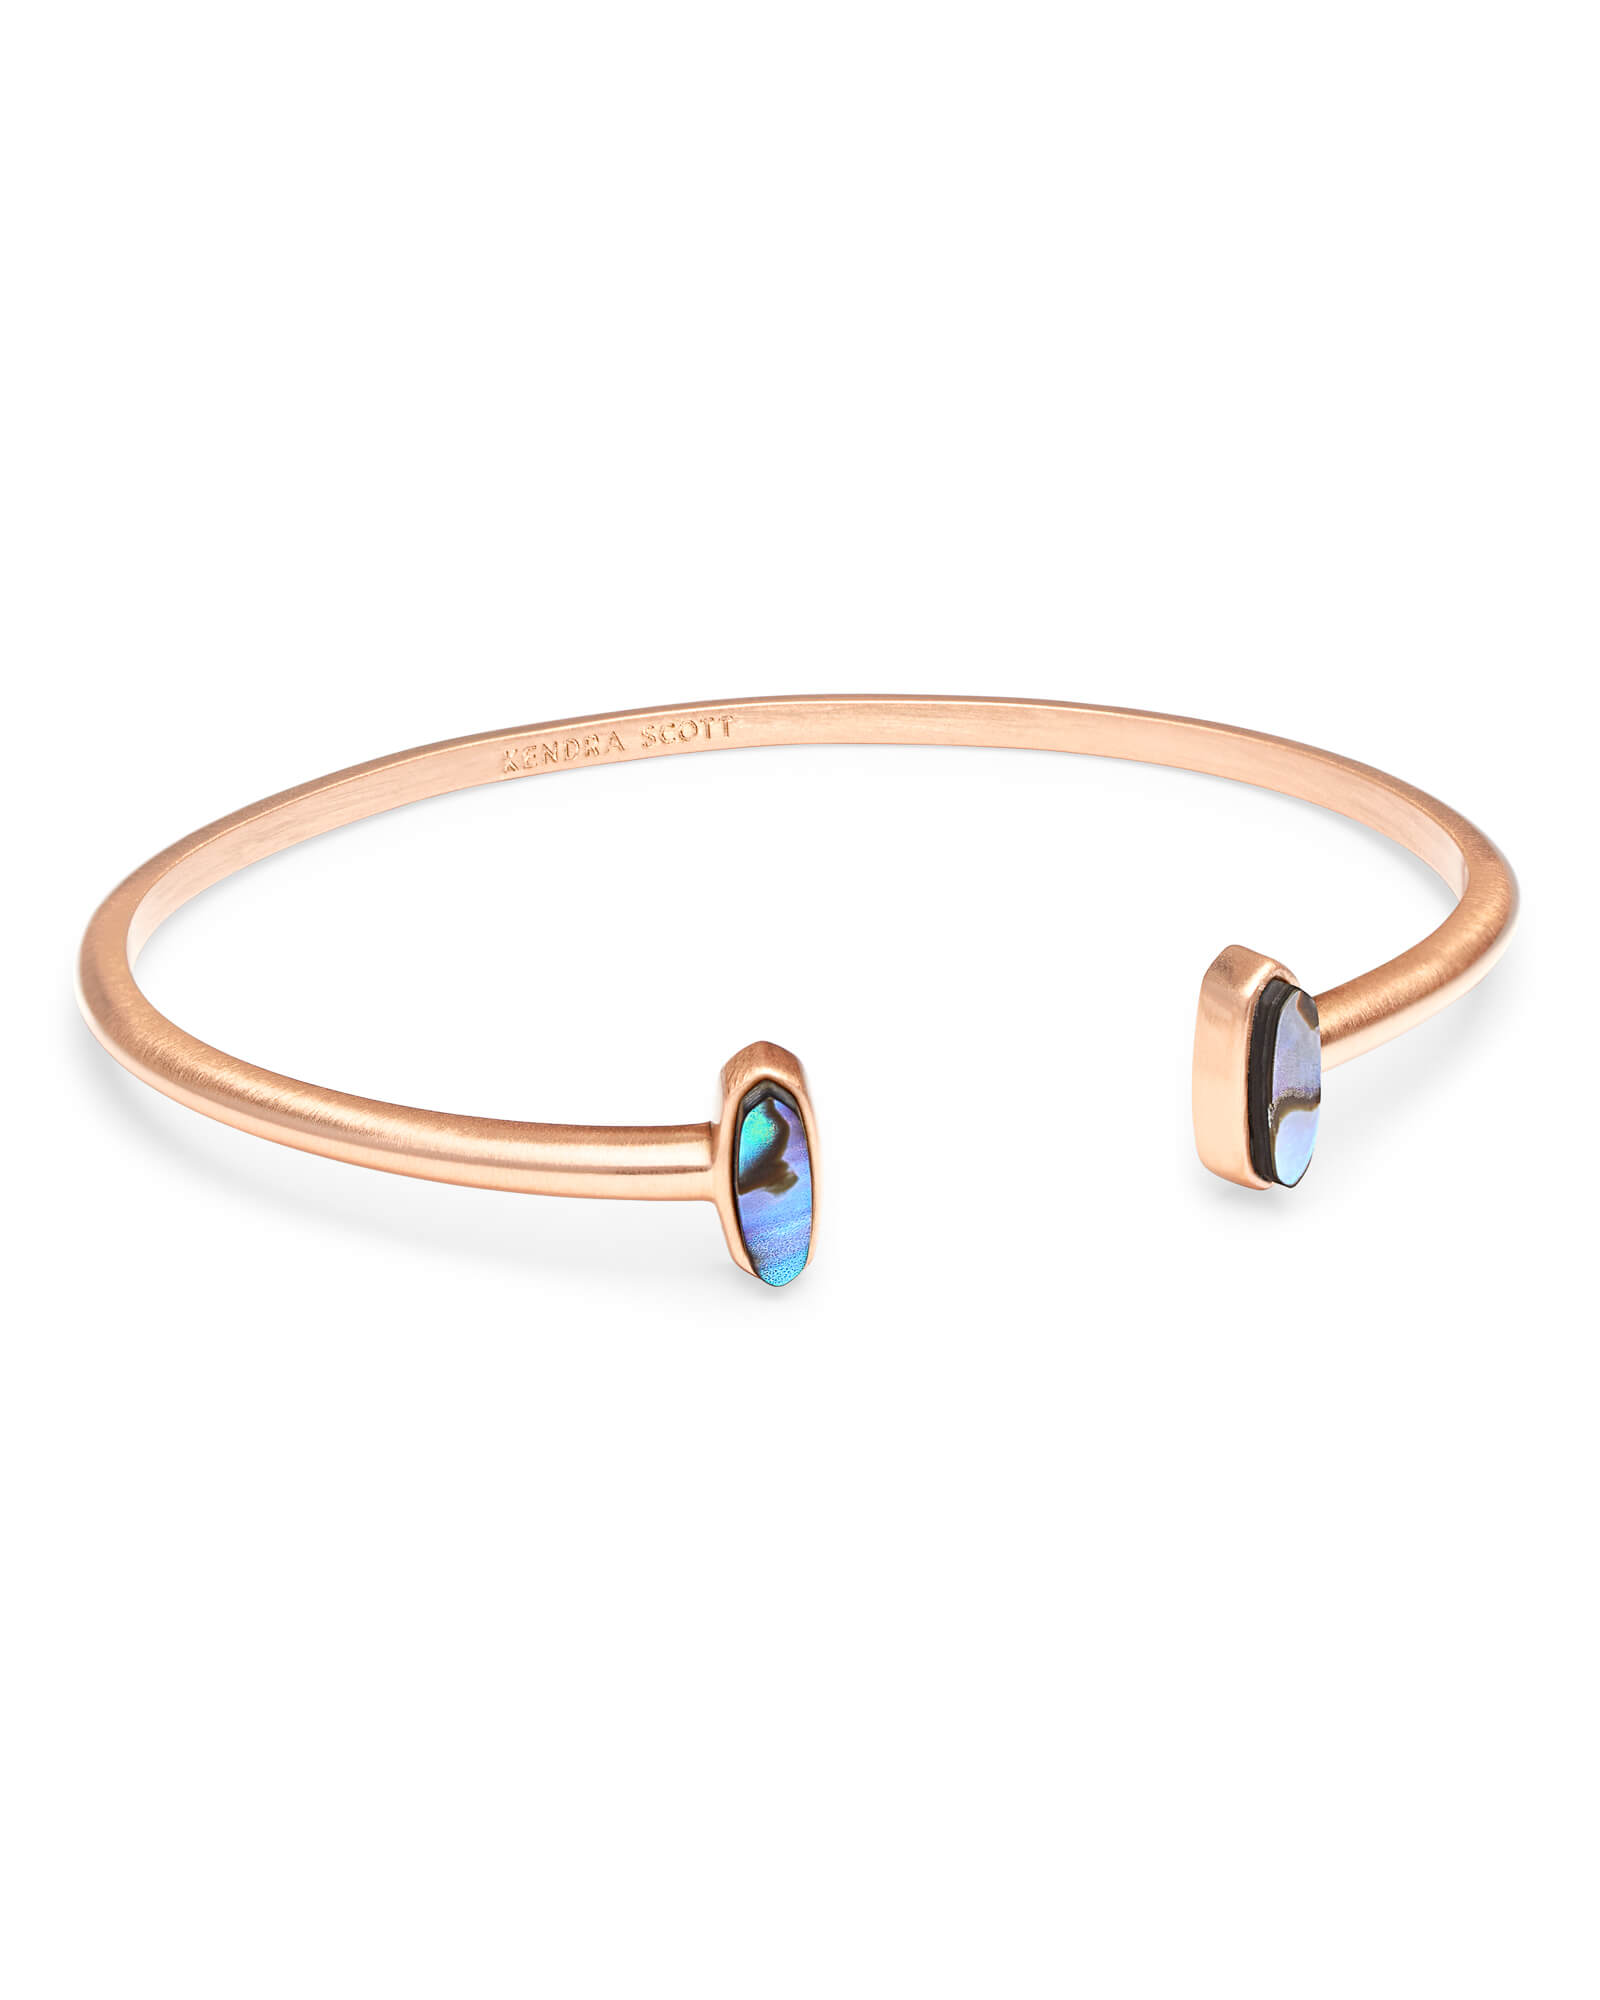 Mavis Rose Gold Cuff Bracelet in Abalone Shell